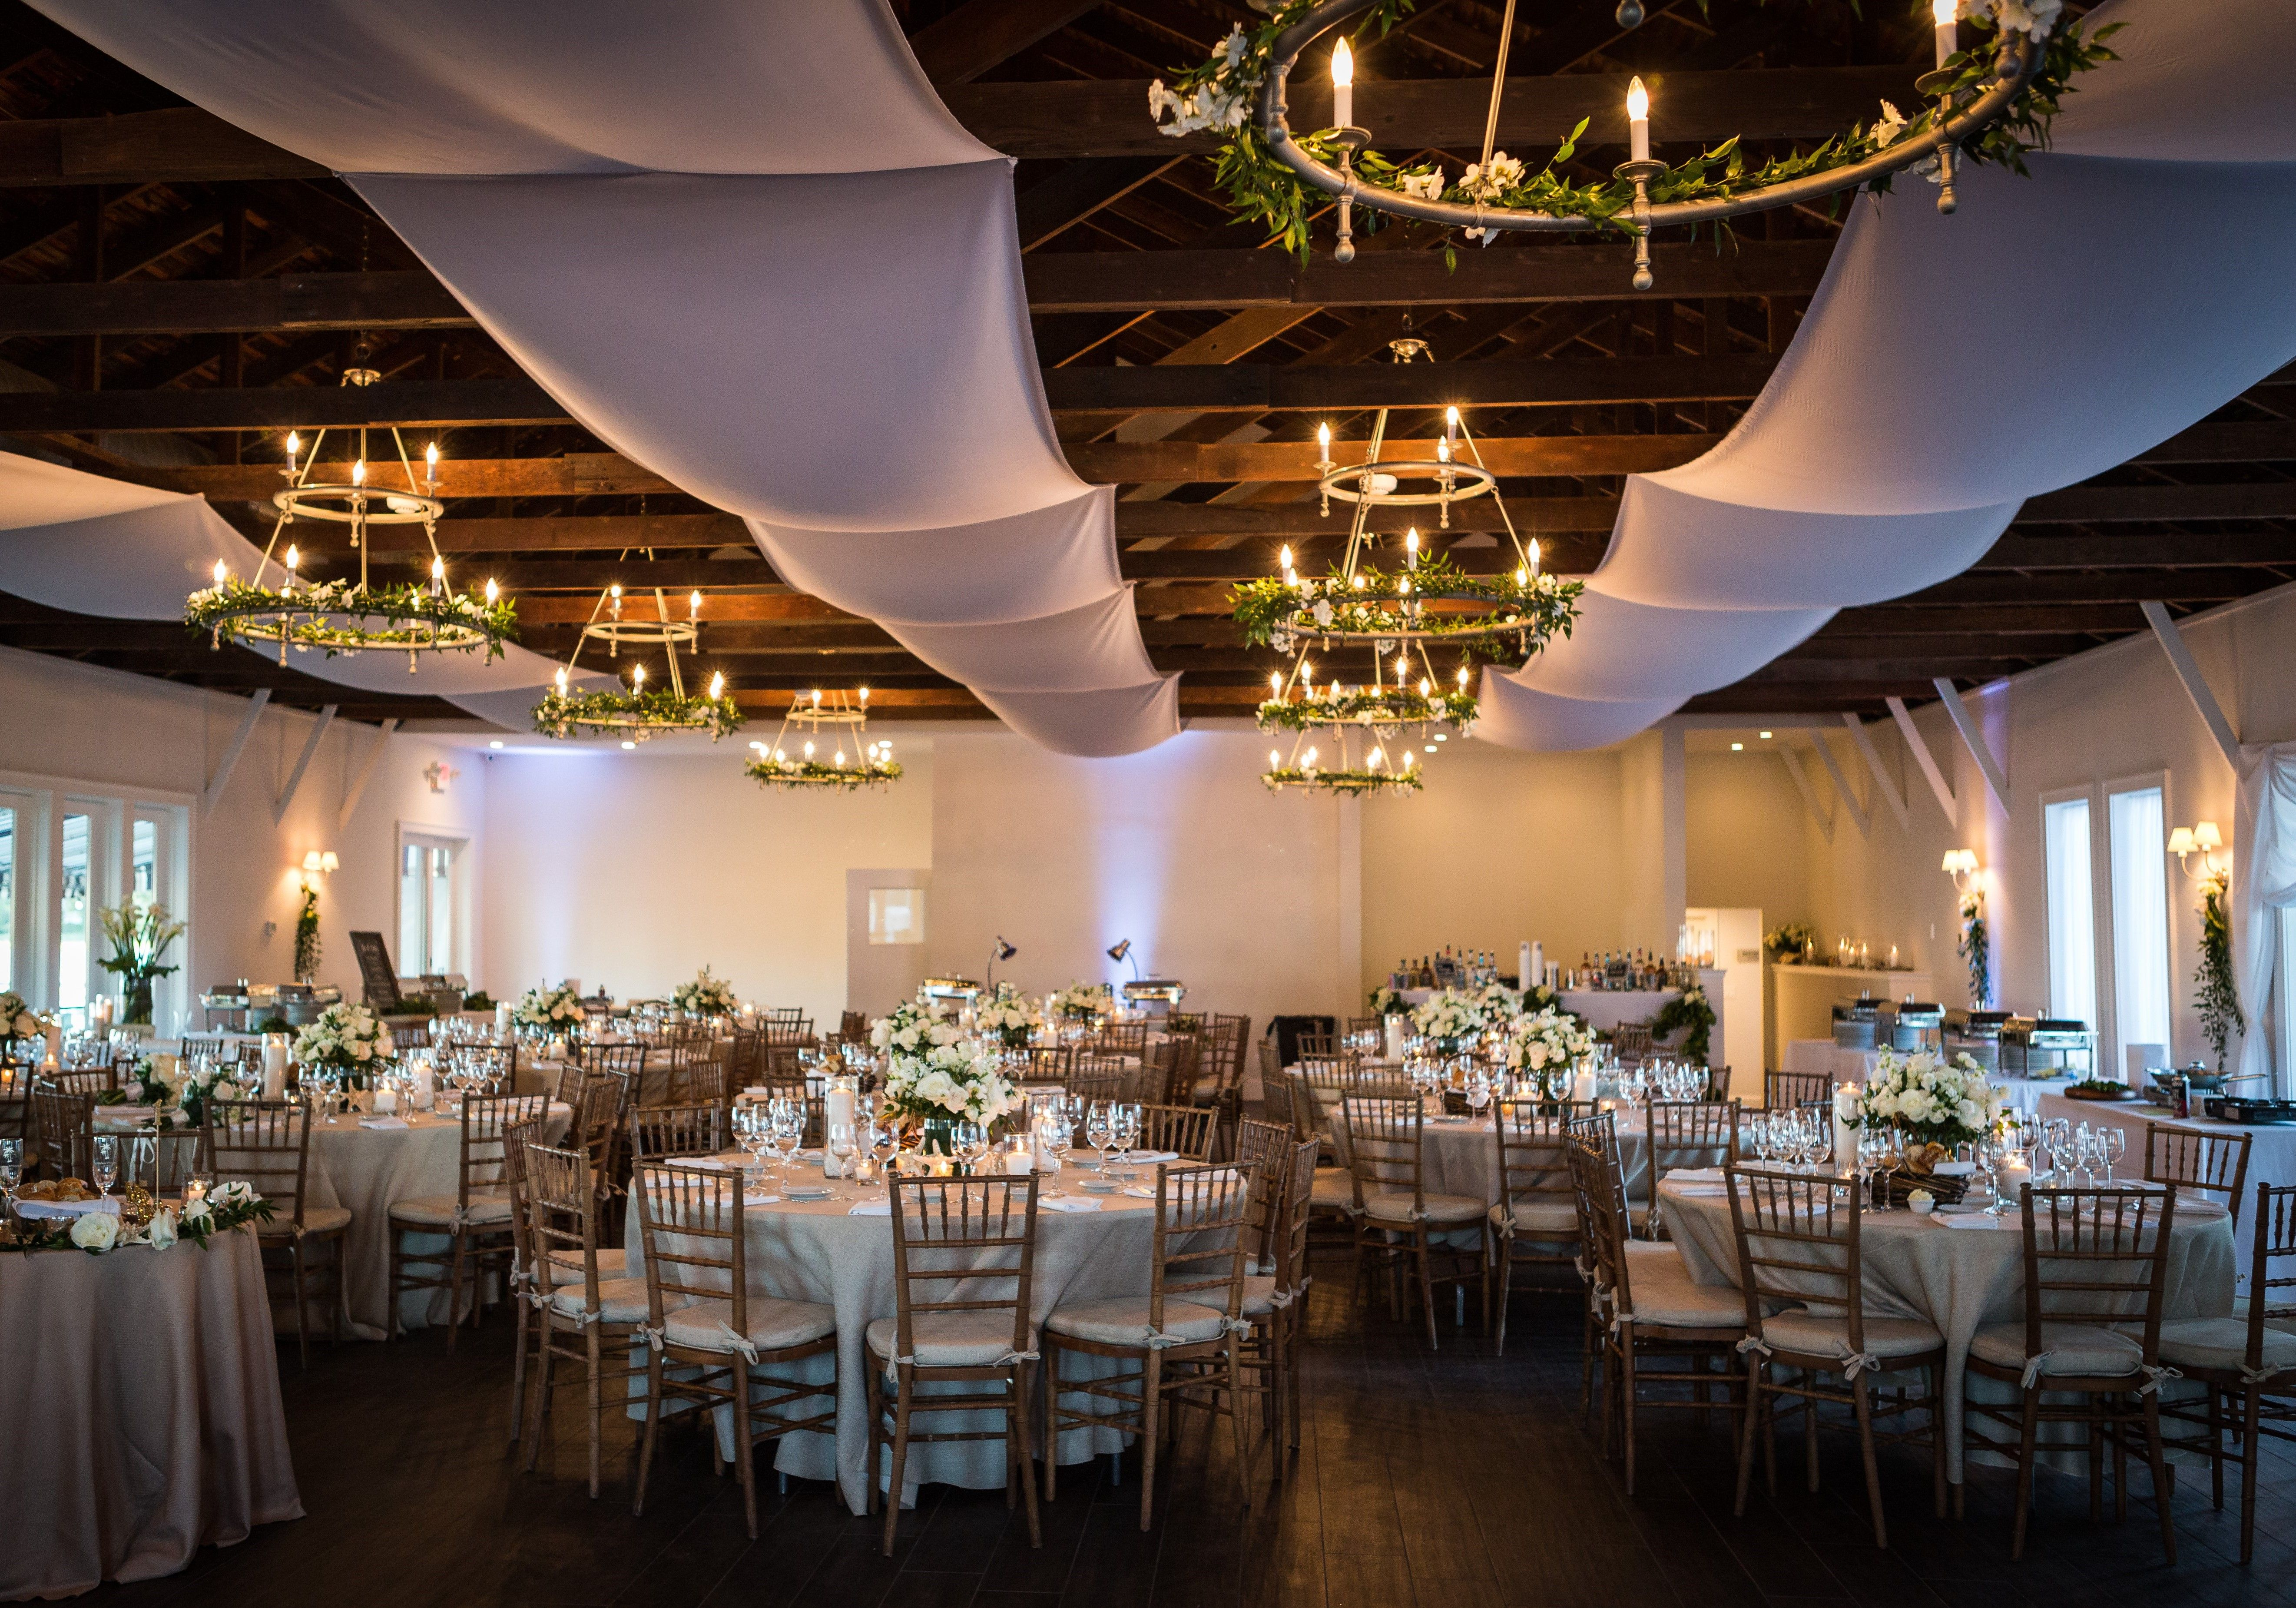 Wedding hall decoration images  The wedding venue of your dreams White cloth draping with ivy on